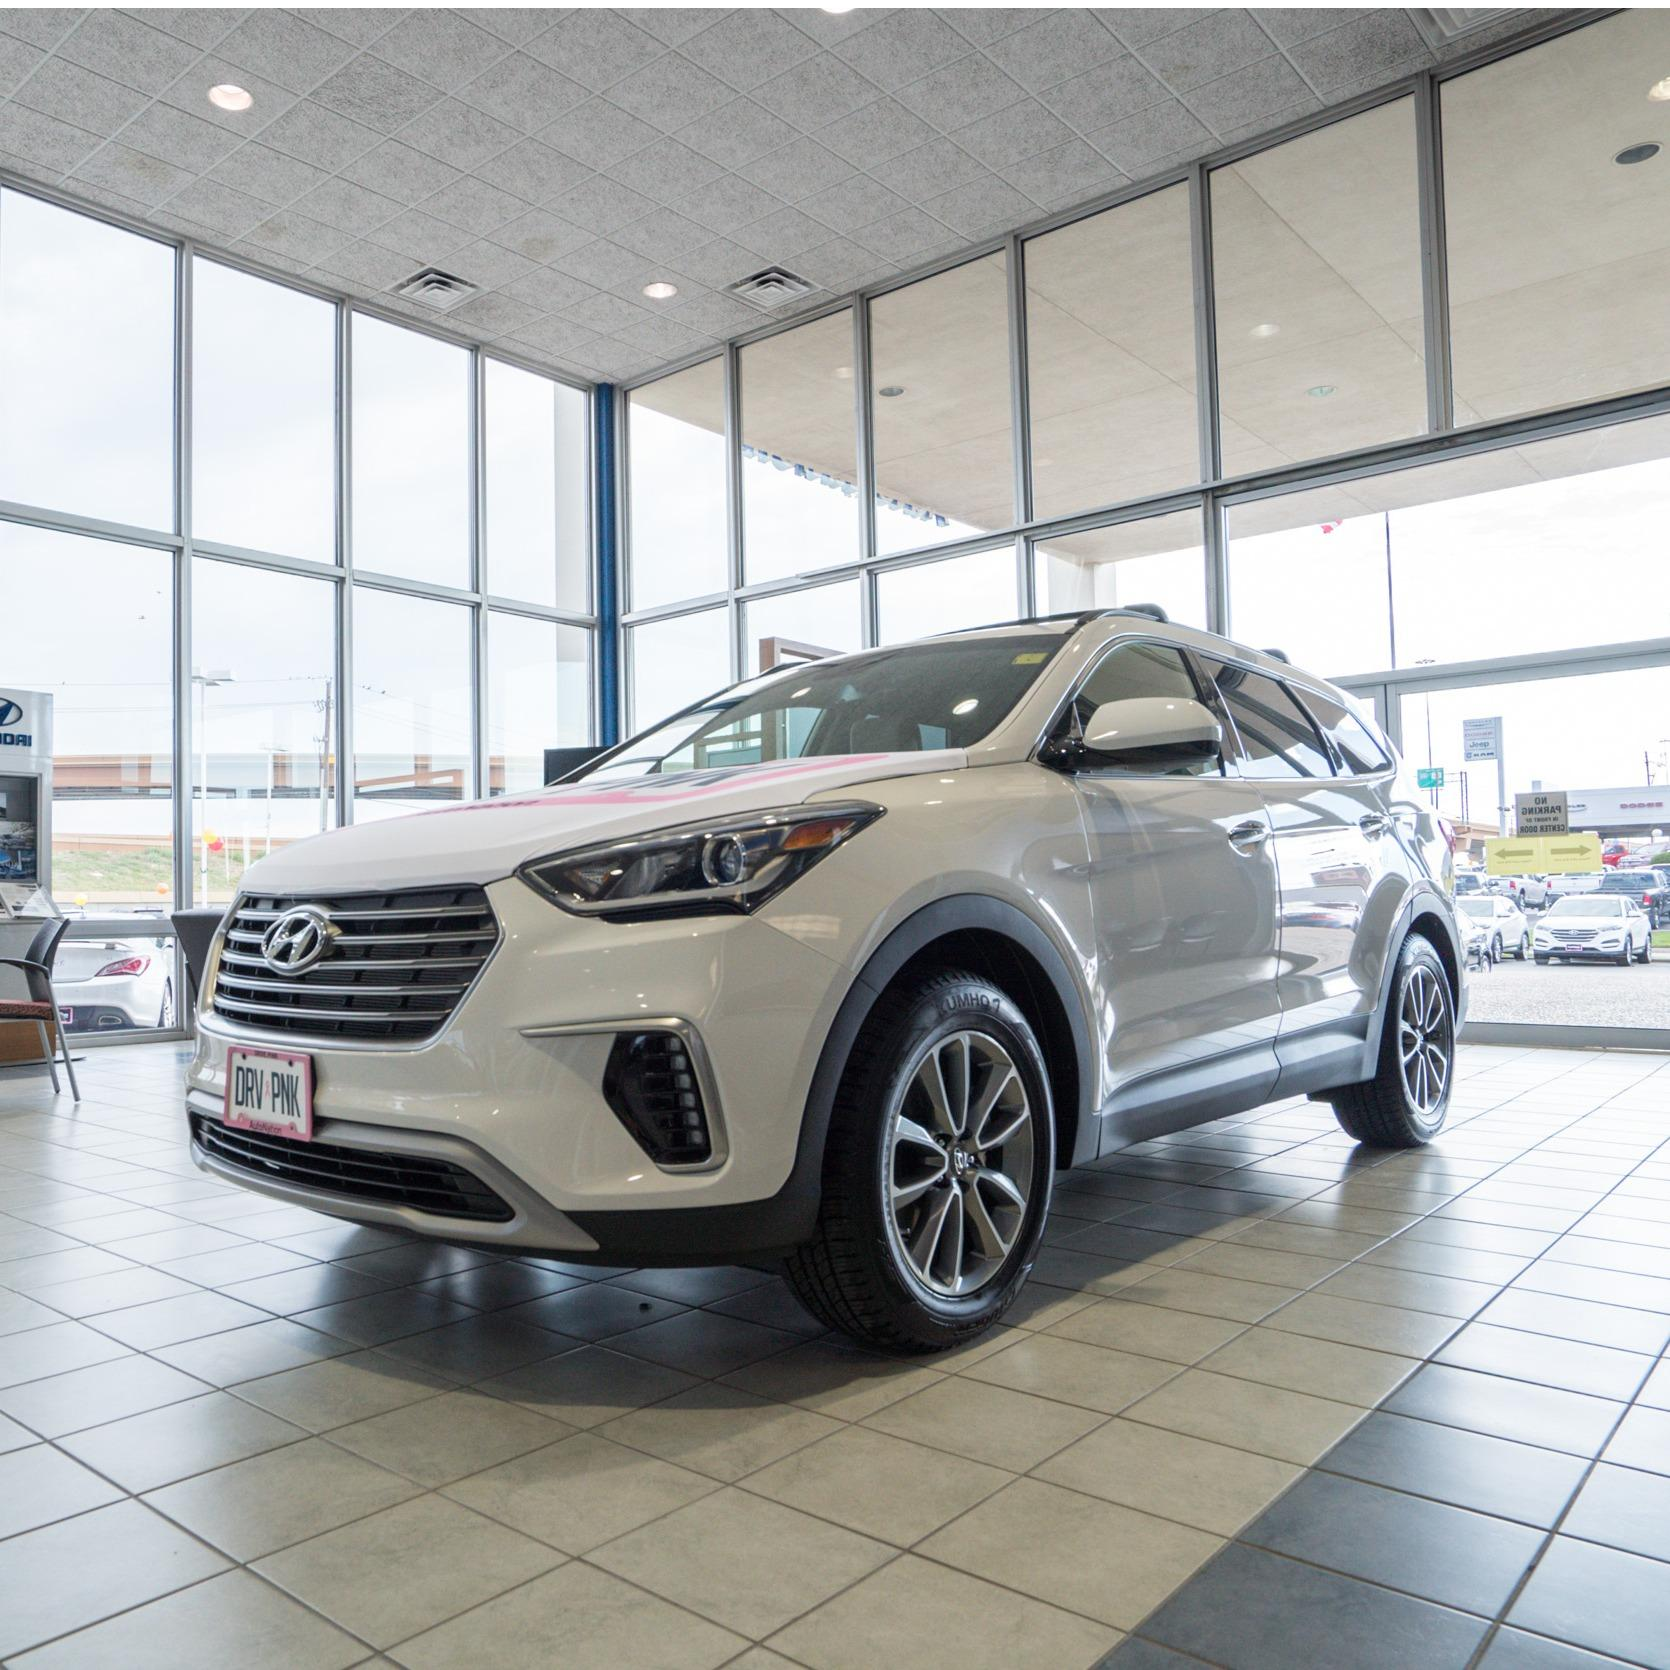 Car Dealer in TX Fort Worth 76180 AutoNation Hyundai North Richland Hills 7724 NE Loop 820  (817)953-6549